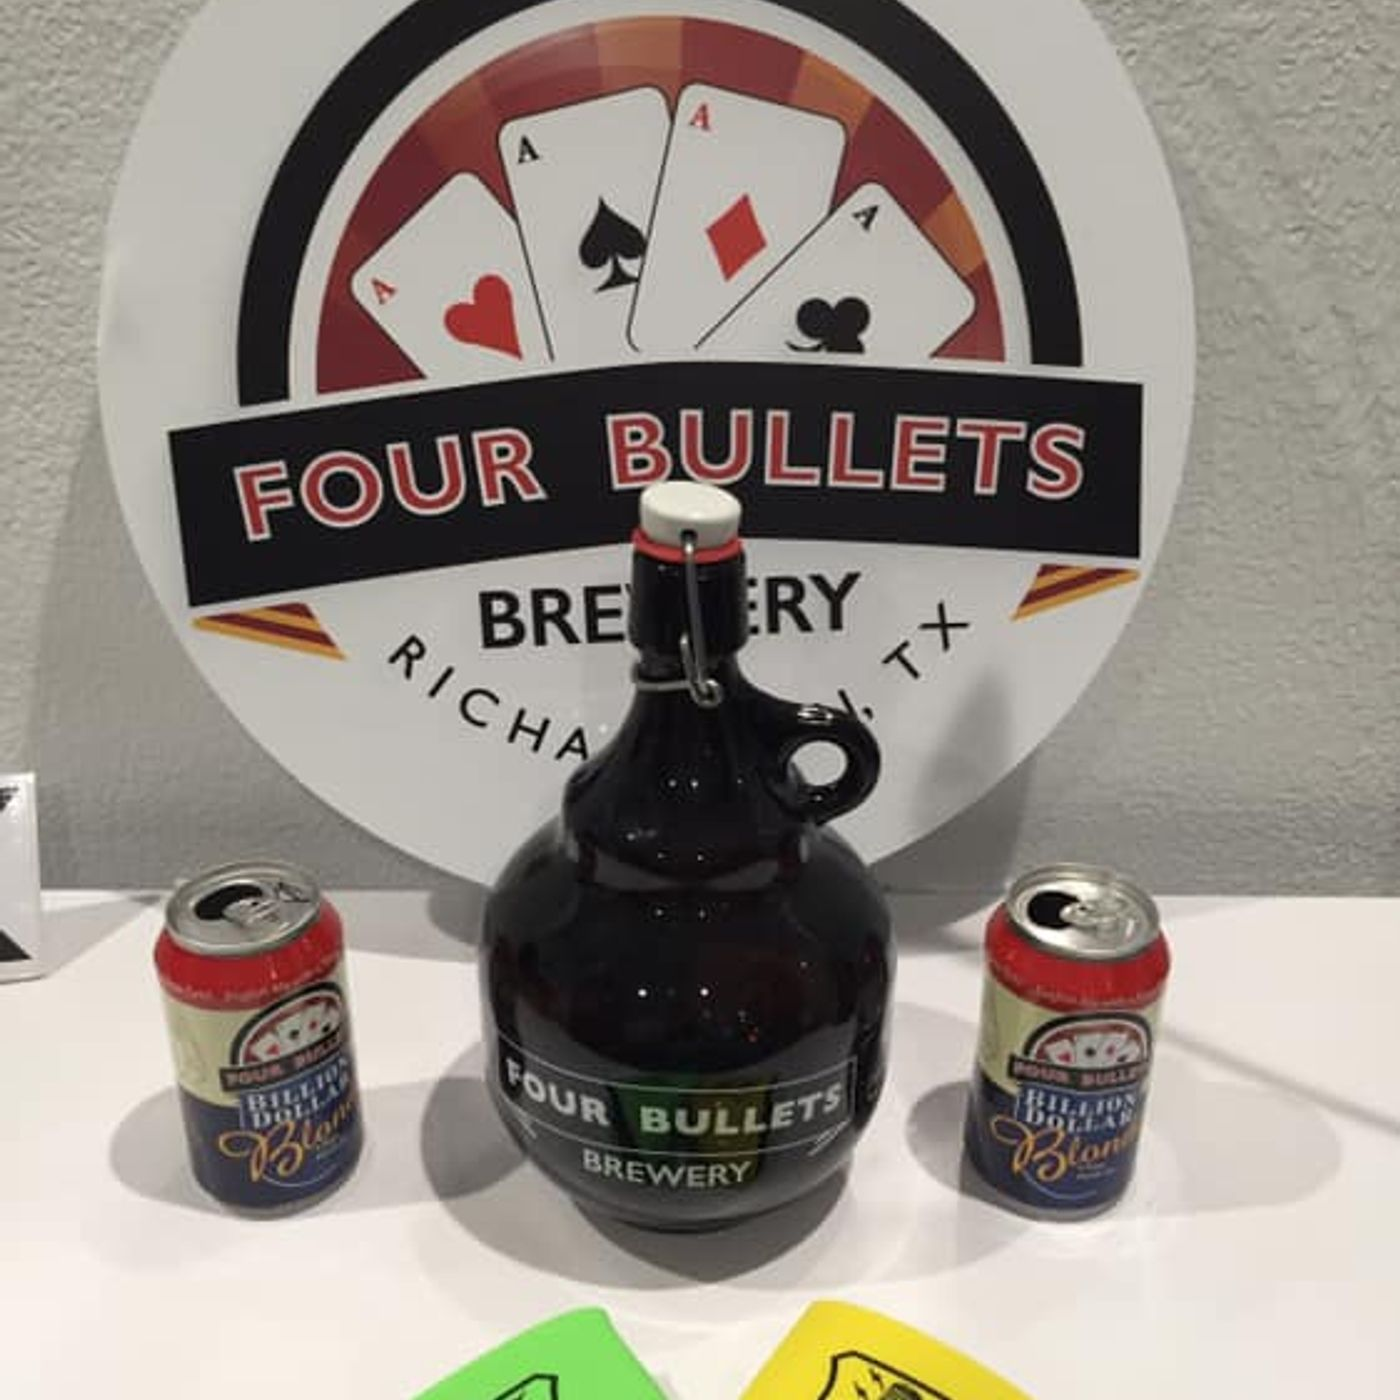 Drinking 4 Dummies The Four Bullets Brewery Episode